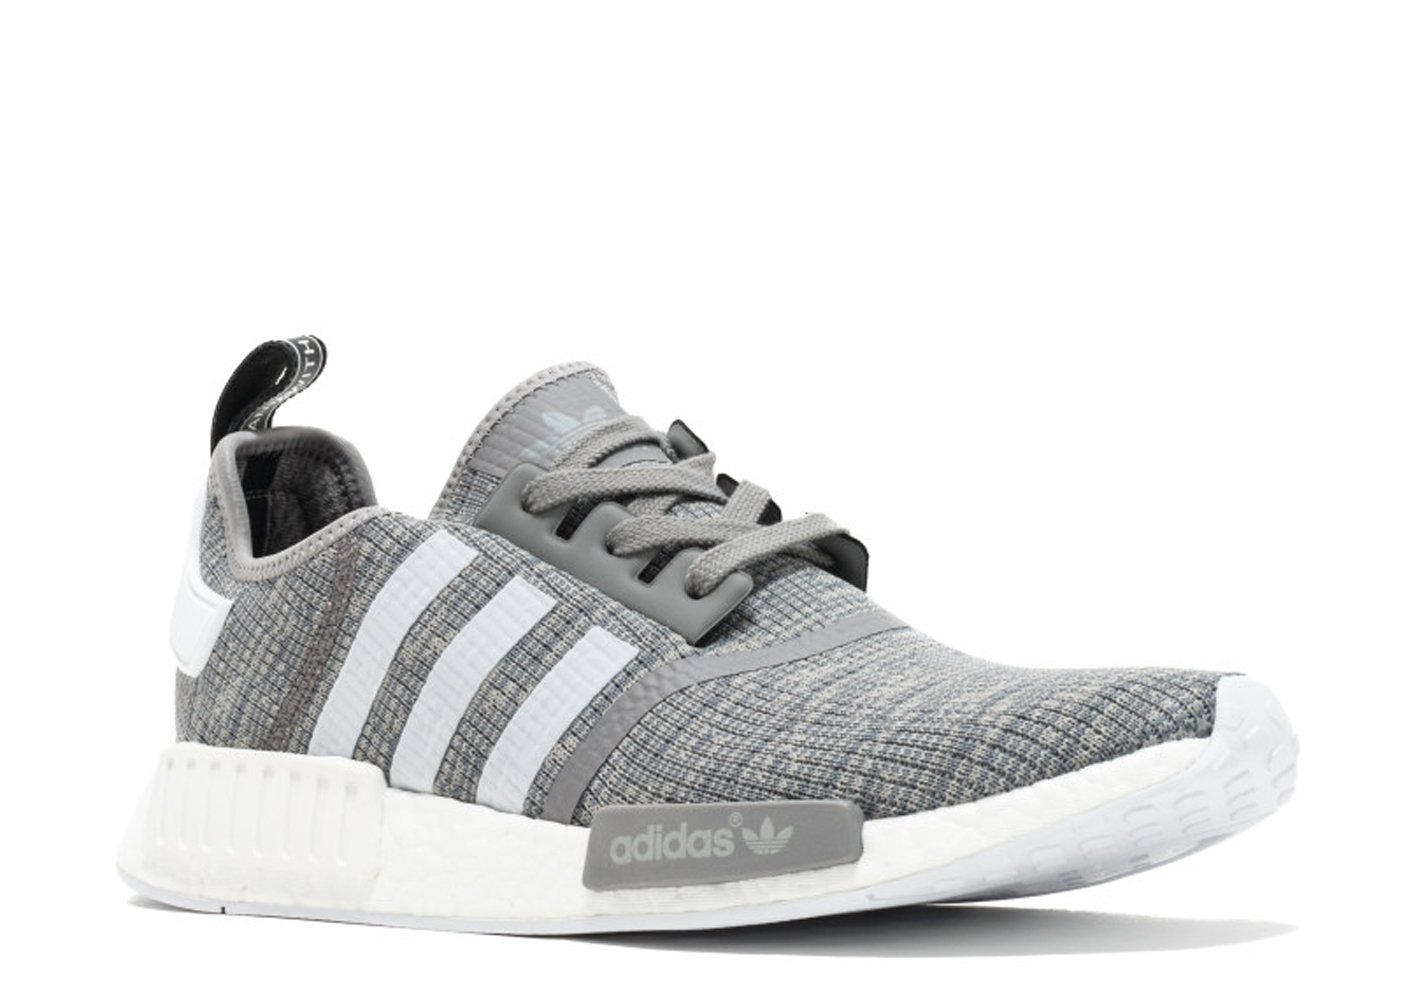 los angeles d1008 60b15 adidas Originals Men's NMD_R1 Glitch Graphic Dark Grey Heather Solid  Grey/Footwear White/Footwear White Athletic Shoe